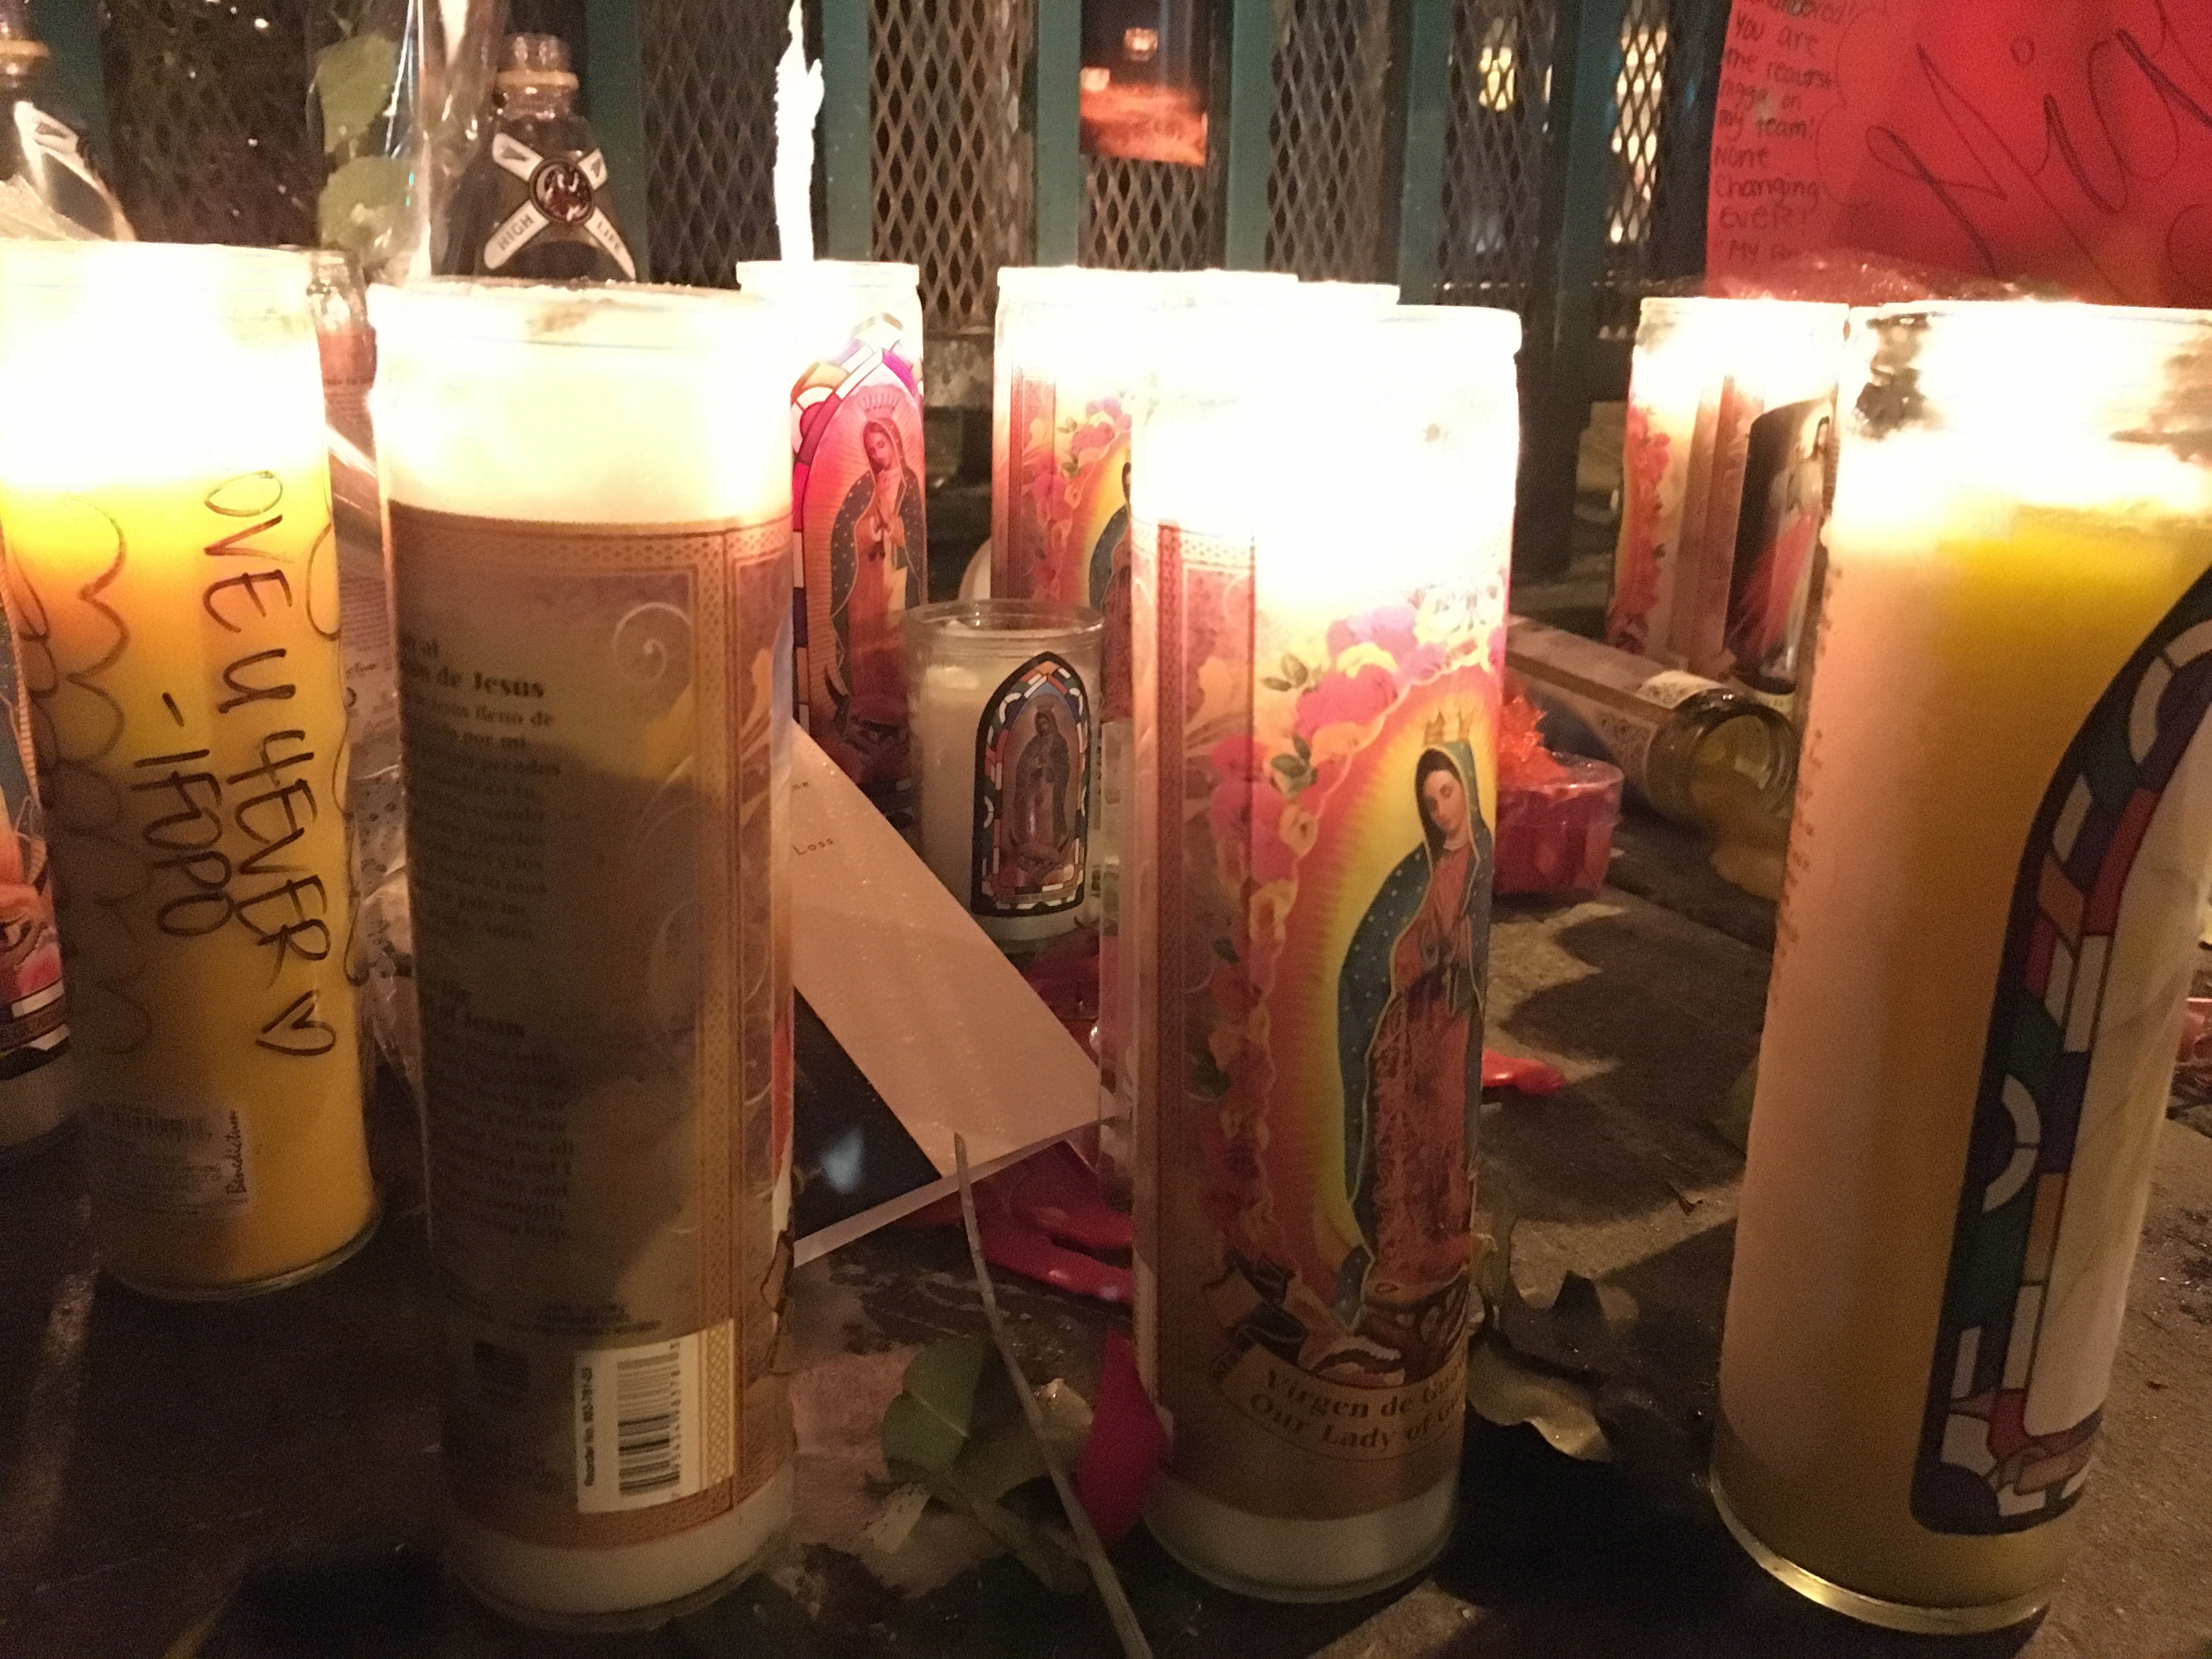 Memorial Honors 17-Year-Old Killed on Outskirts of SF Mission